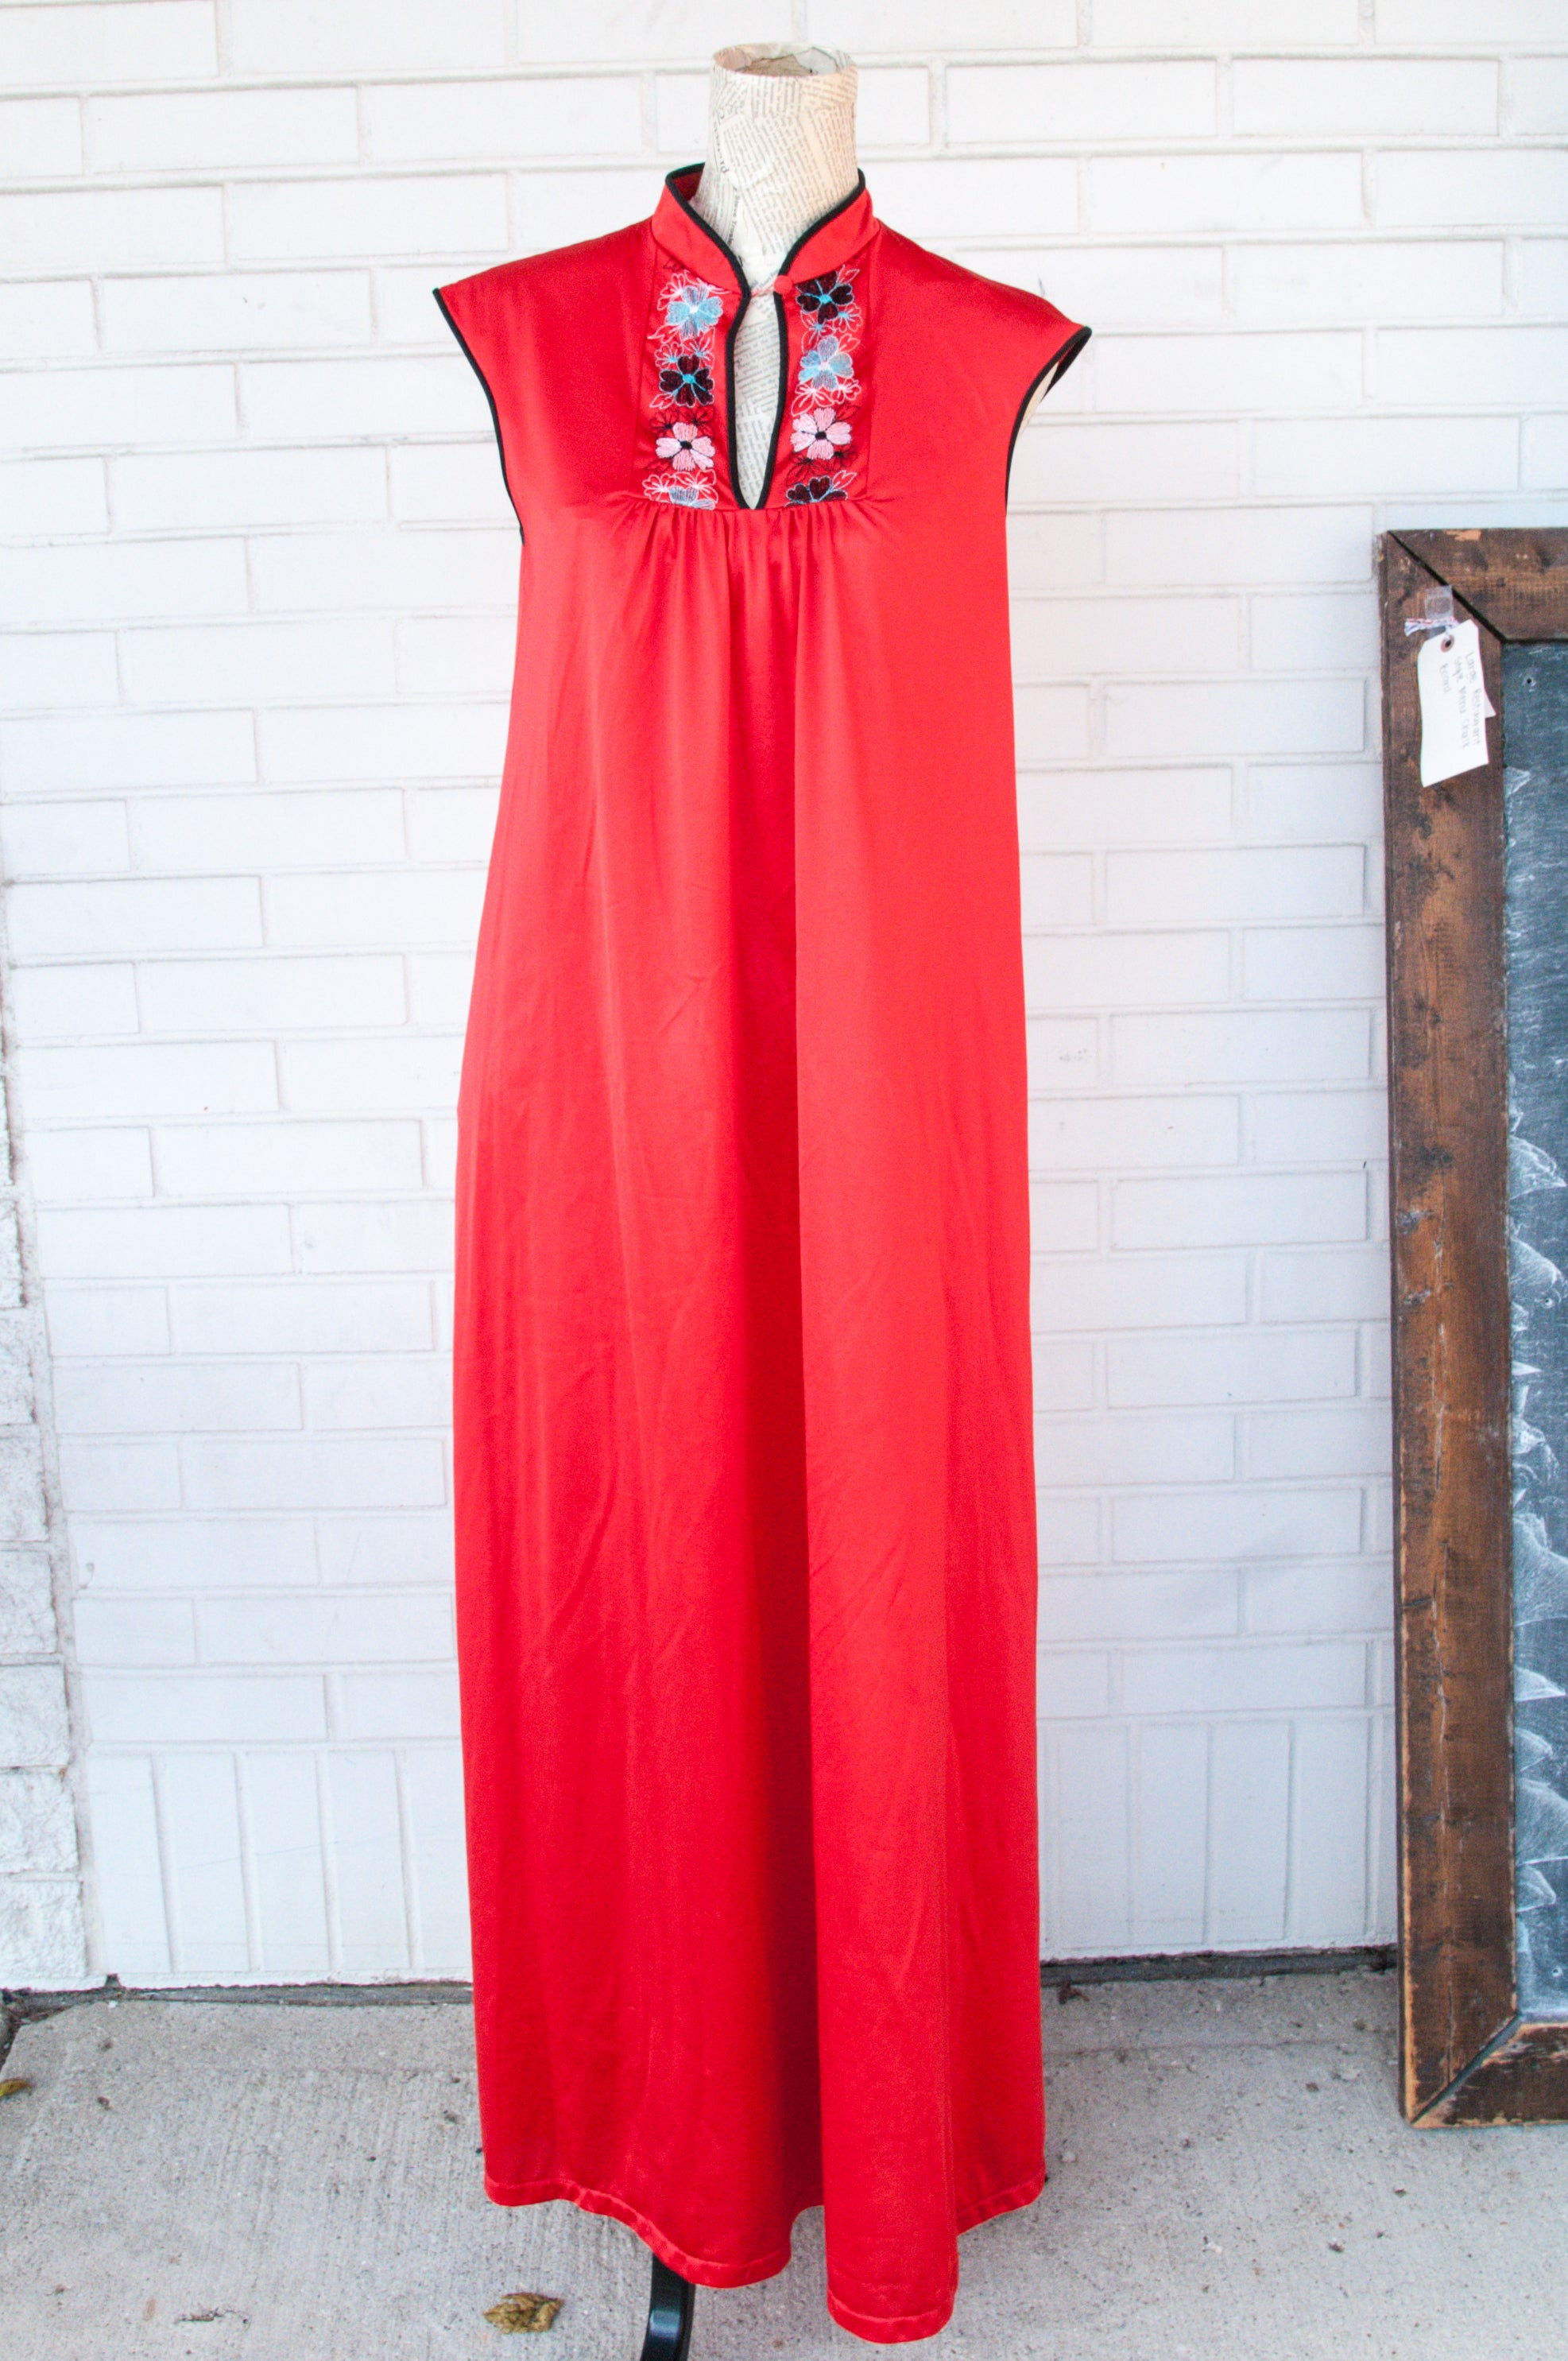 Red Nightgown with Embroidered Collar - Vintage 42 Boutique. Red Nightgown  with Embroidered Collar - Vintage 42 Boutique 41df44d11